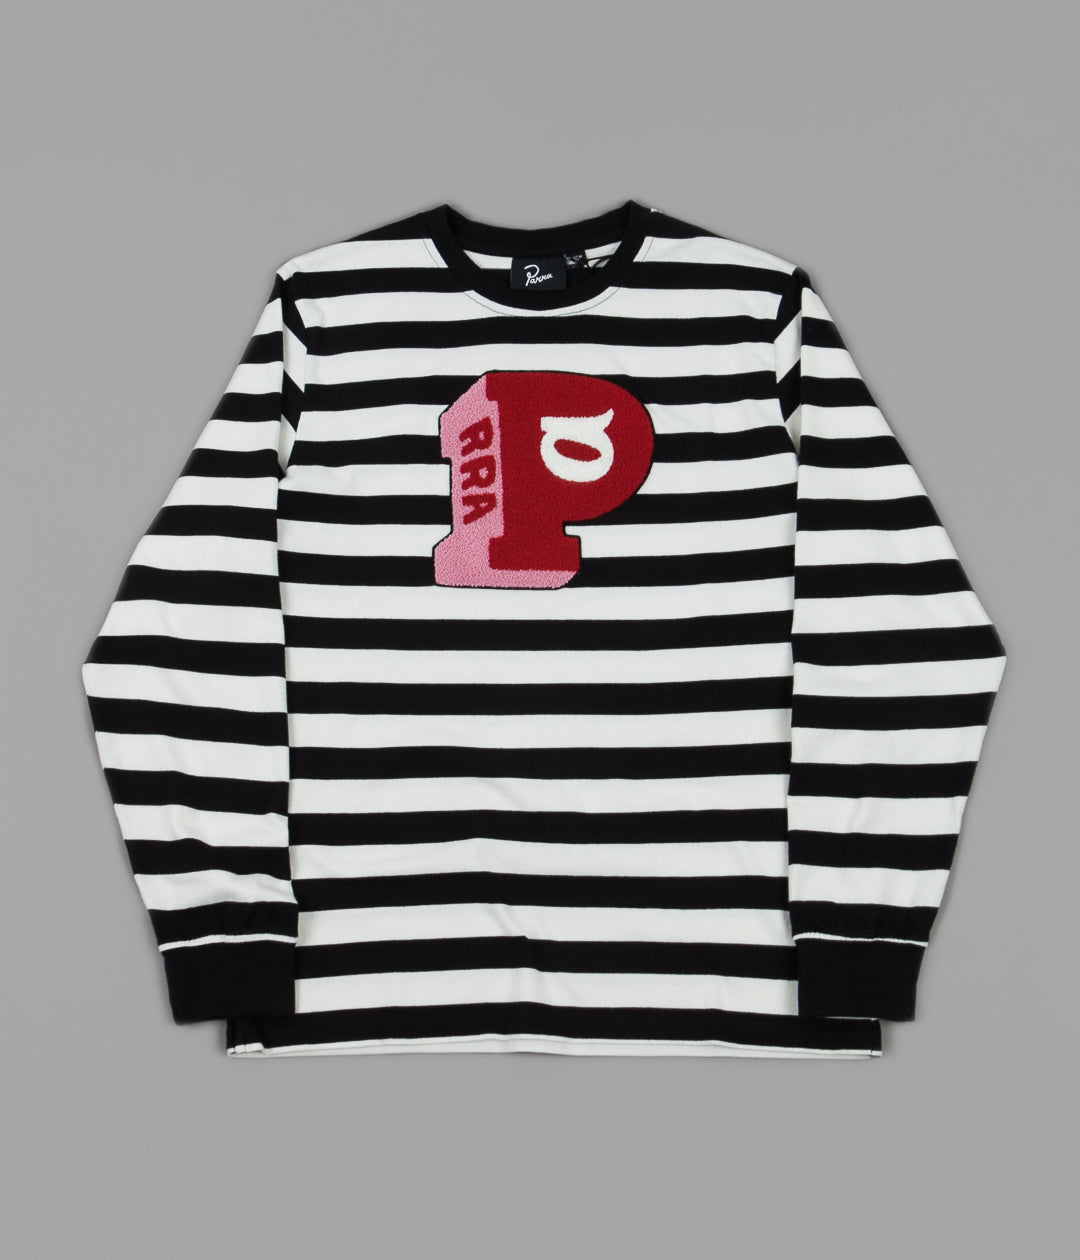 by Parra Block P Striped Long Sleeve T-Shirt - Stripes